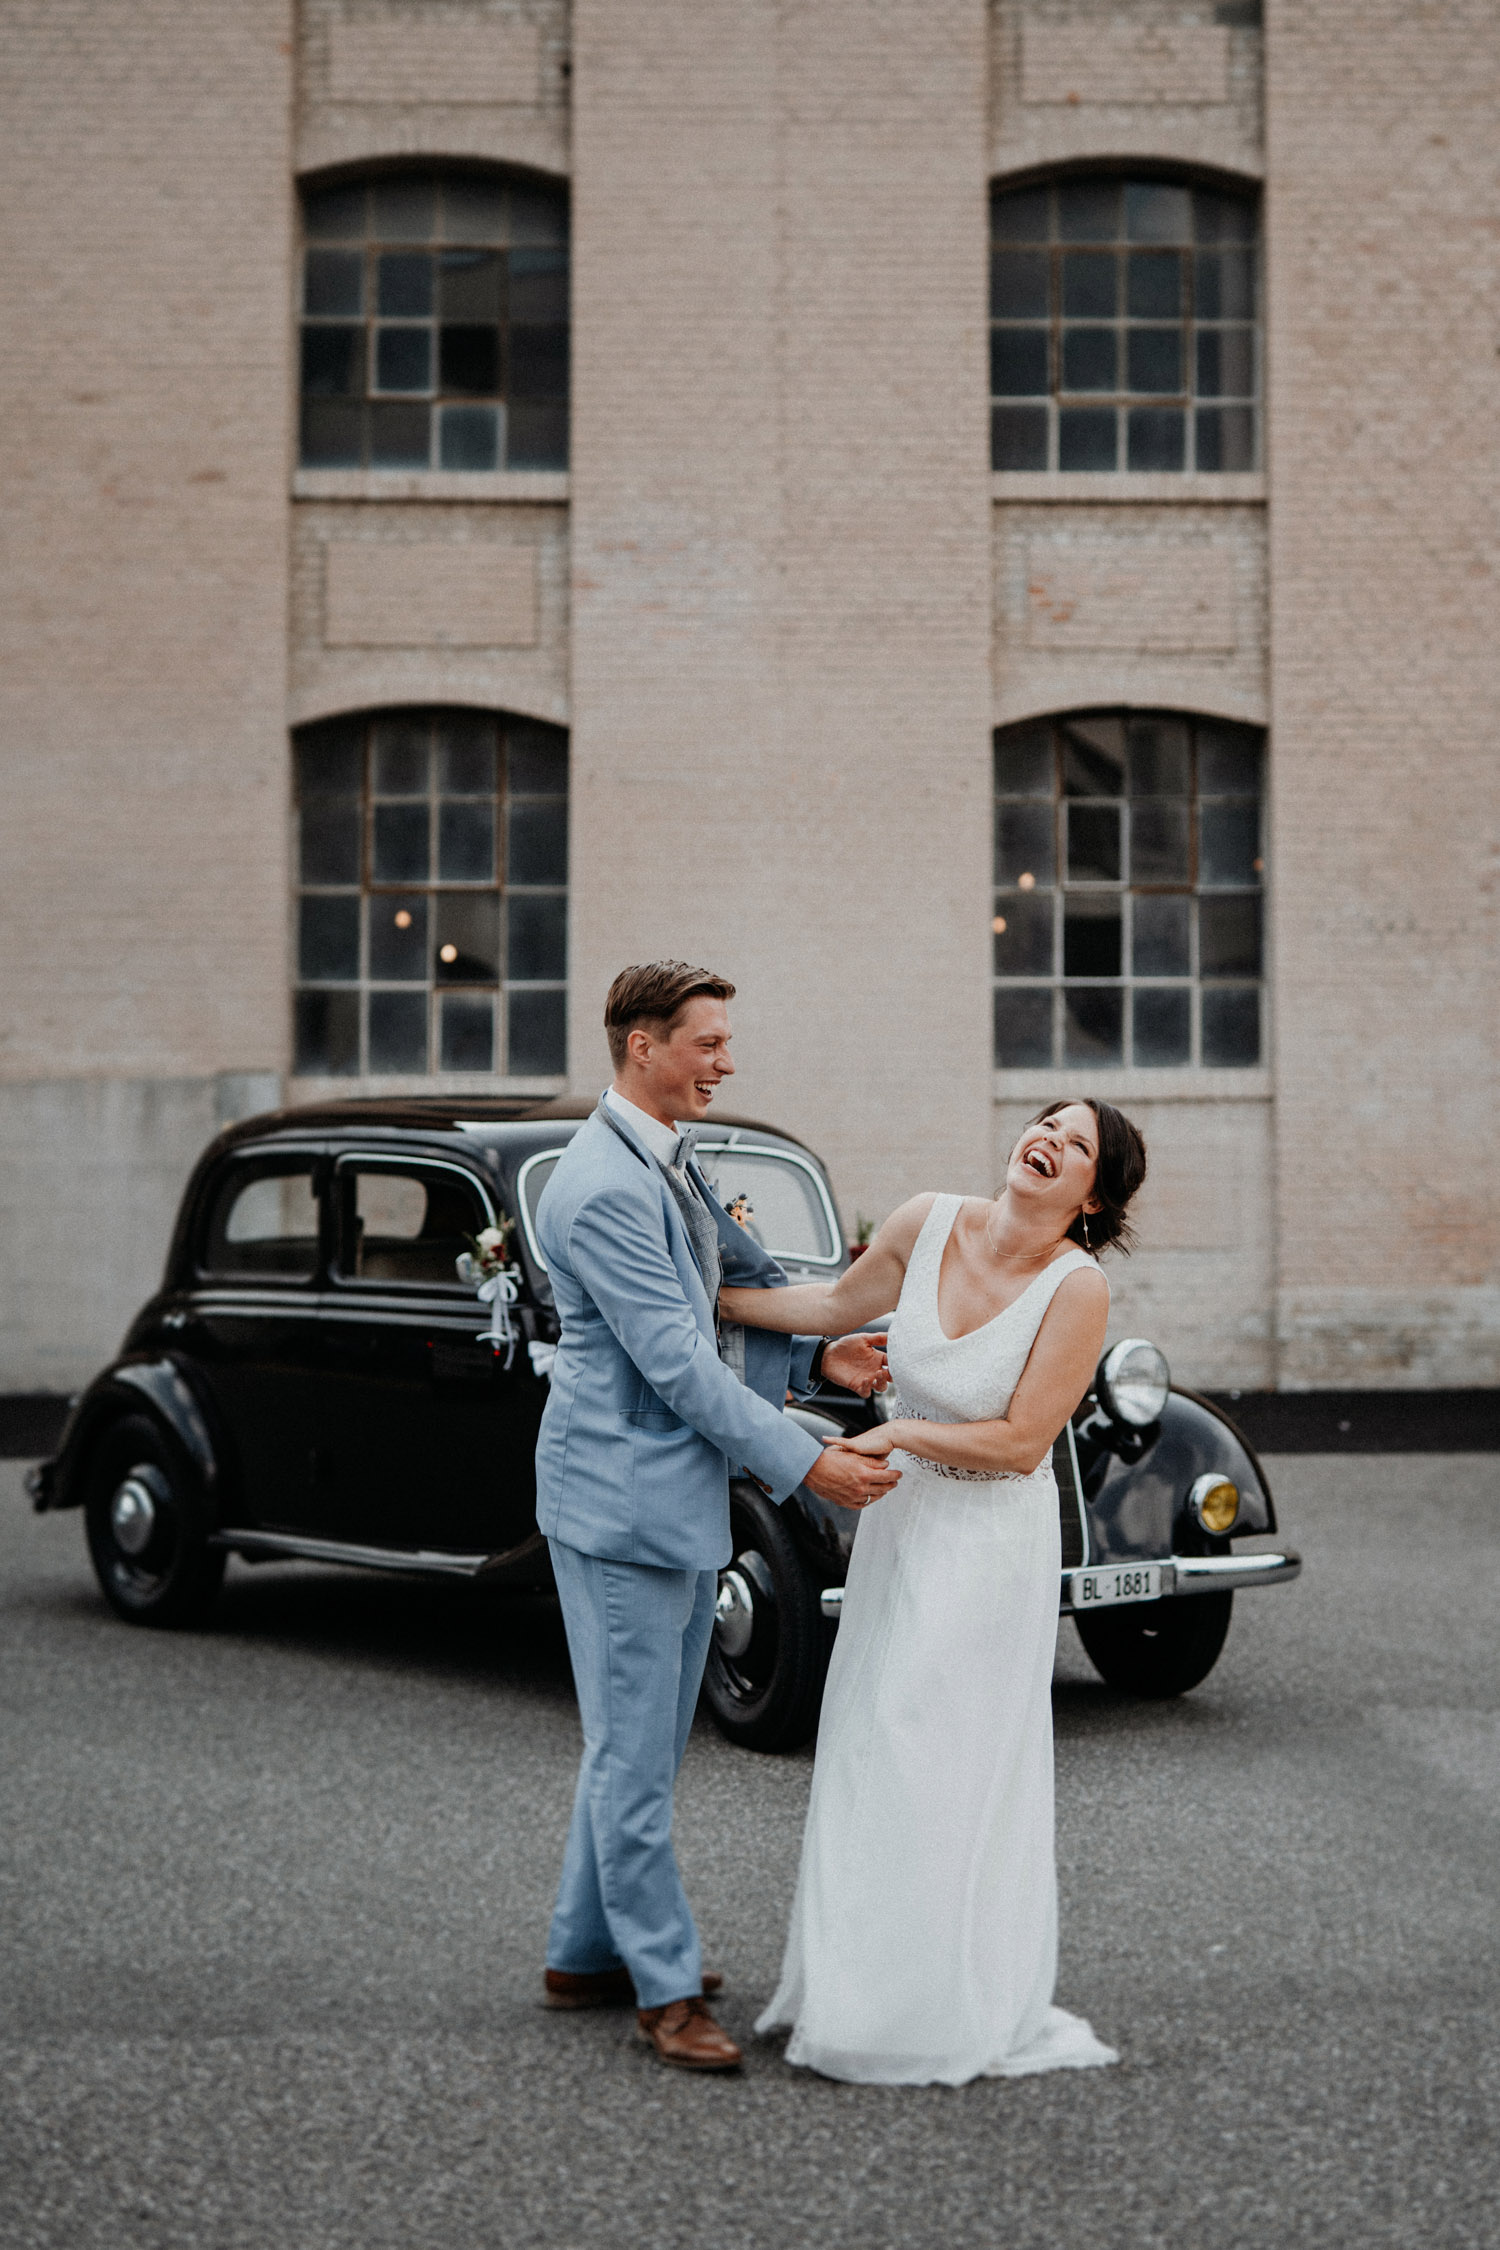 Vintage Industrial Bohemian Wedding in Switzerland wedding photographer elopement photographer location Tonwerk Lausen bridal couple shooting oldtimer car